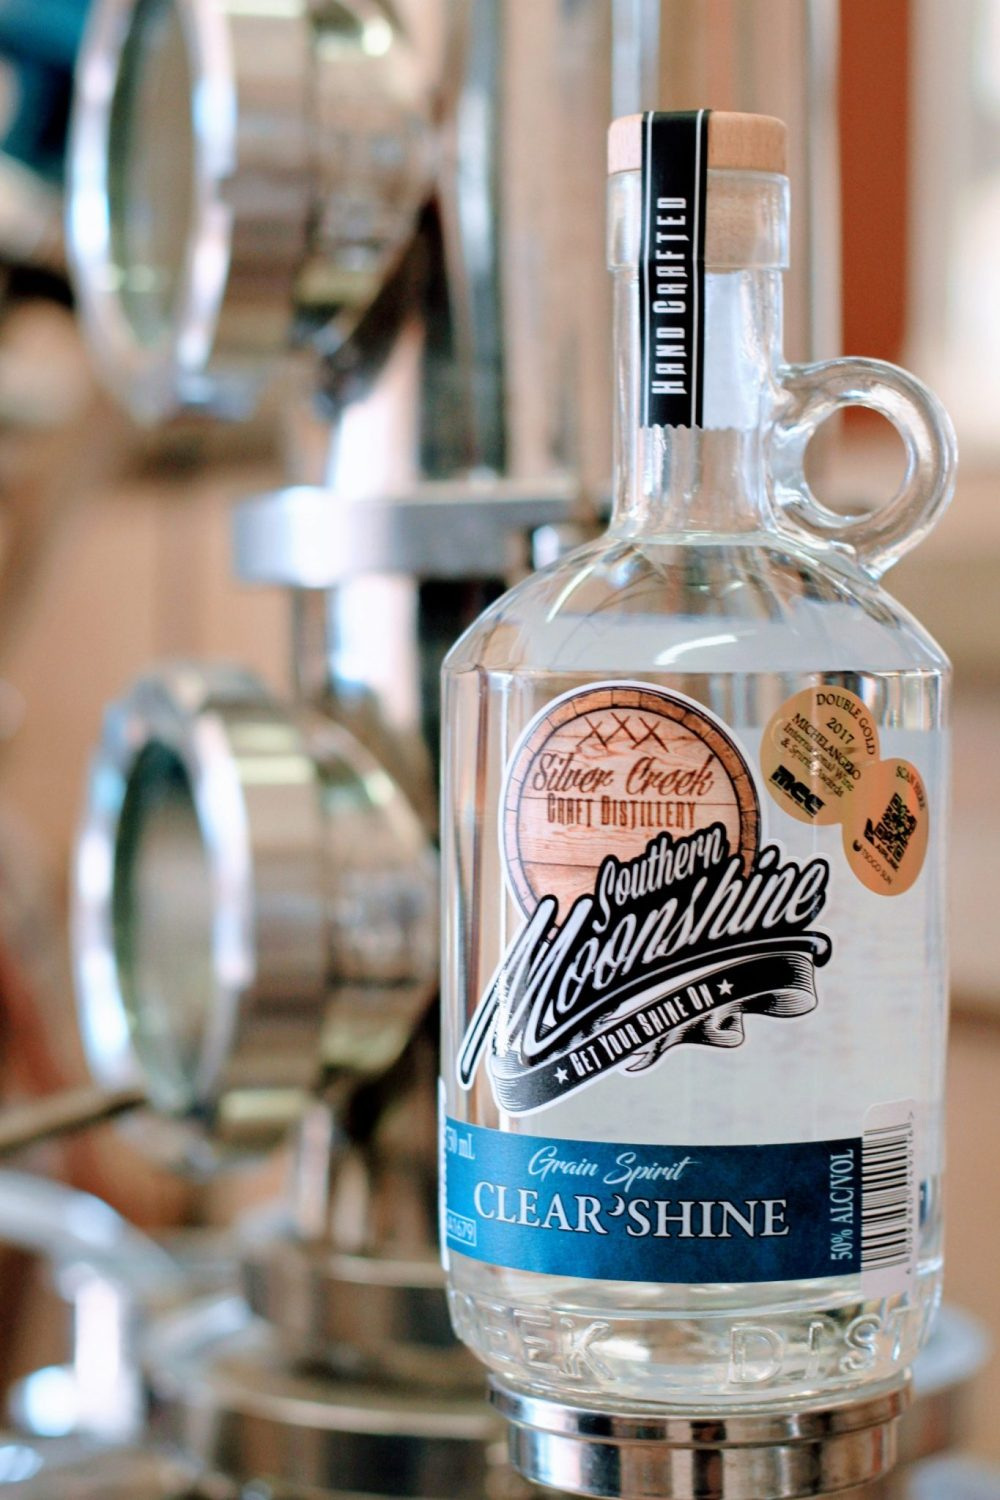 Silver Creek Moonshine Clear Shine sonia cabano blog eatdrinkcapetown